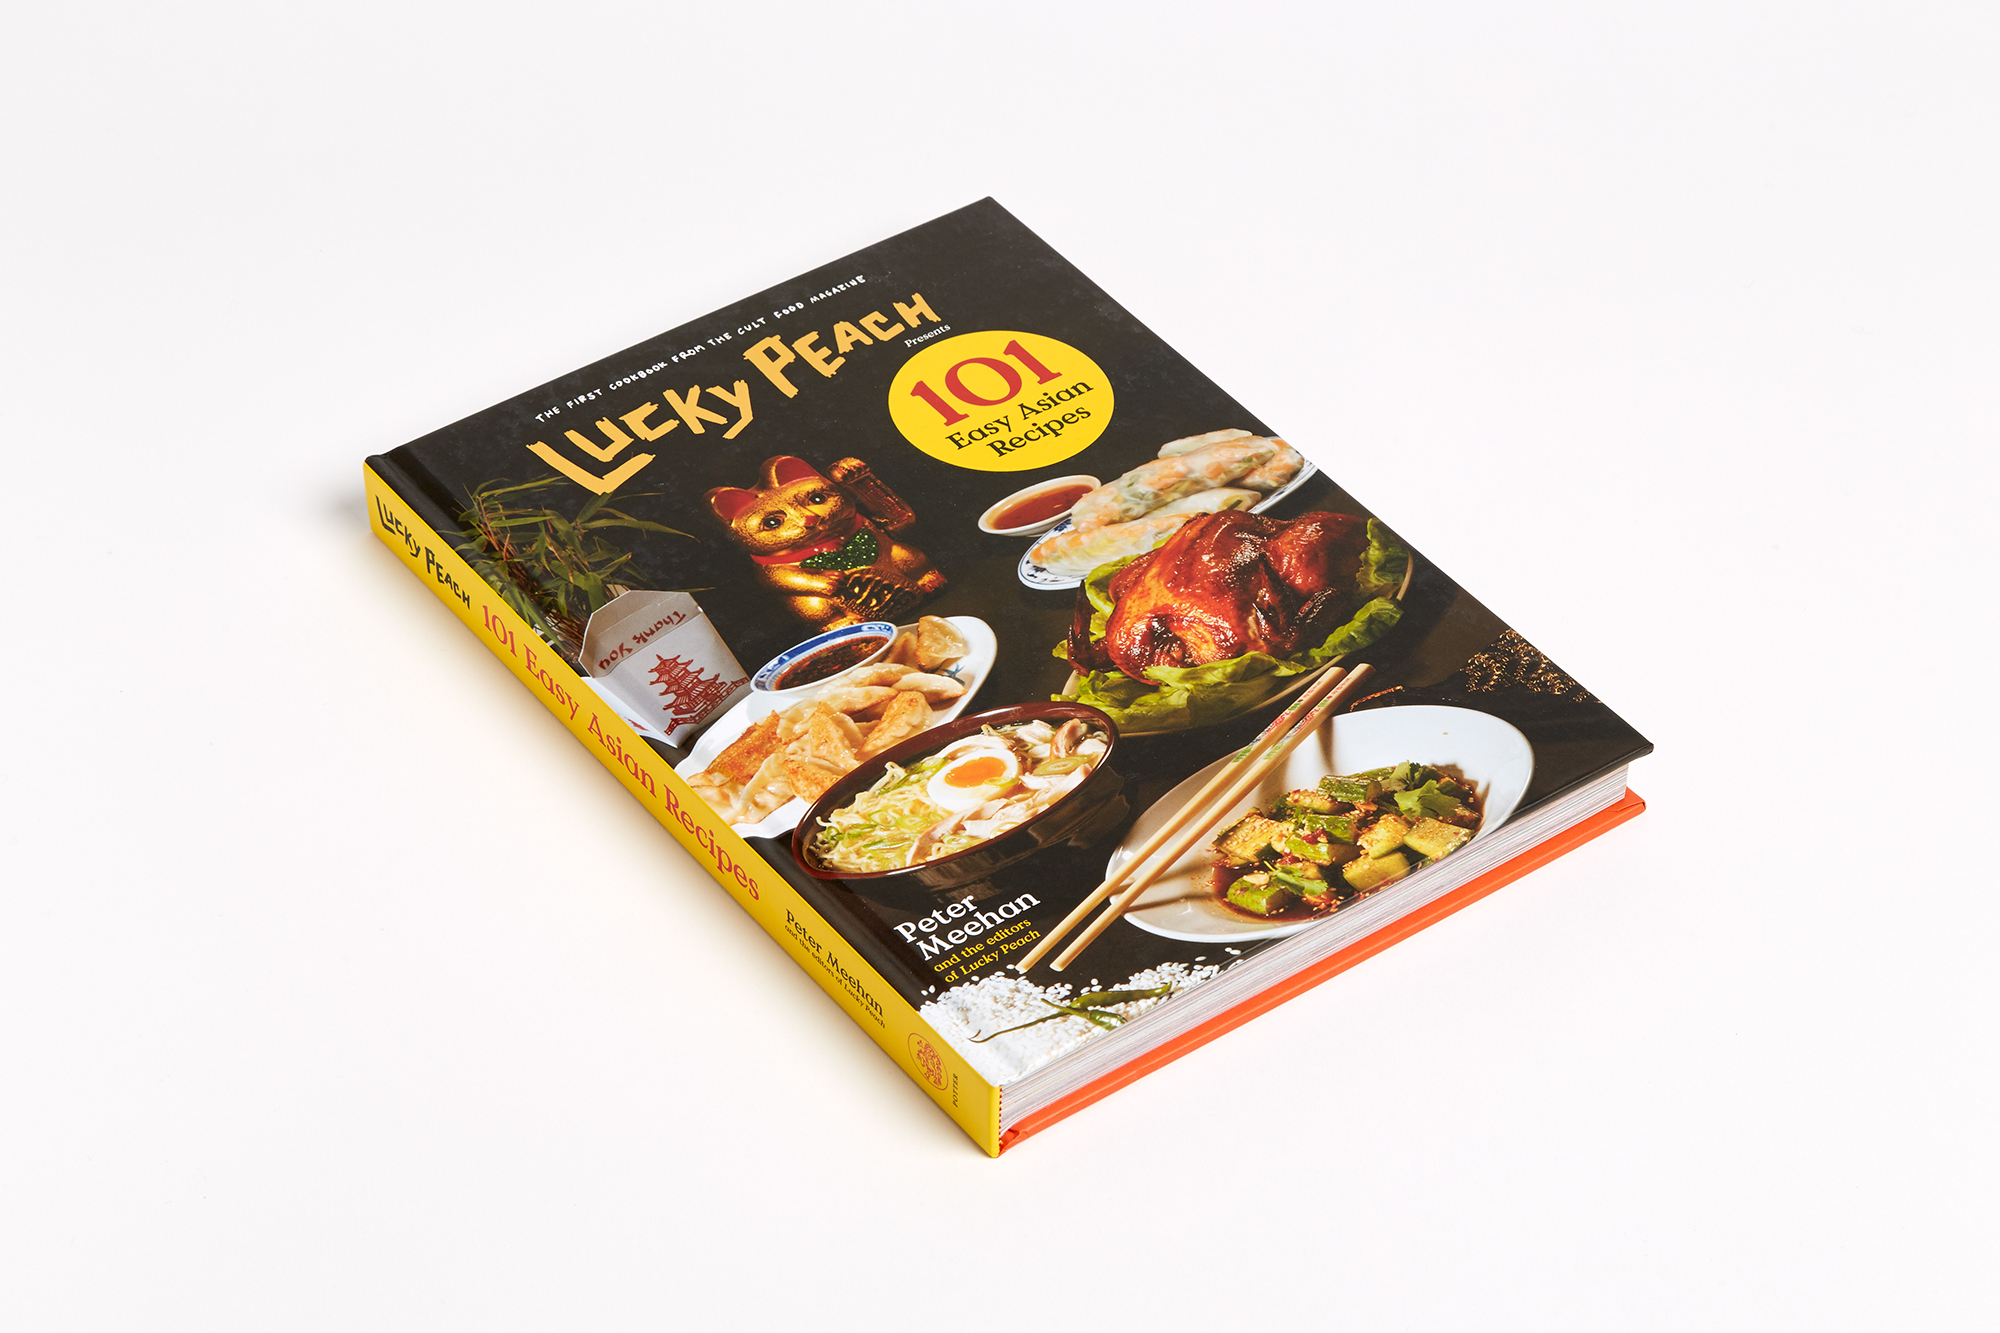 Lucky peach presents 101 easy asian recipes penguin random house 23 download jpeg forumfinder Images